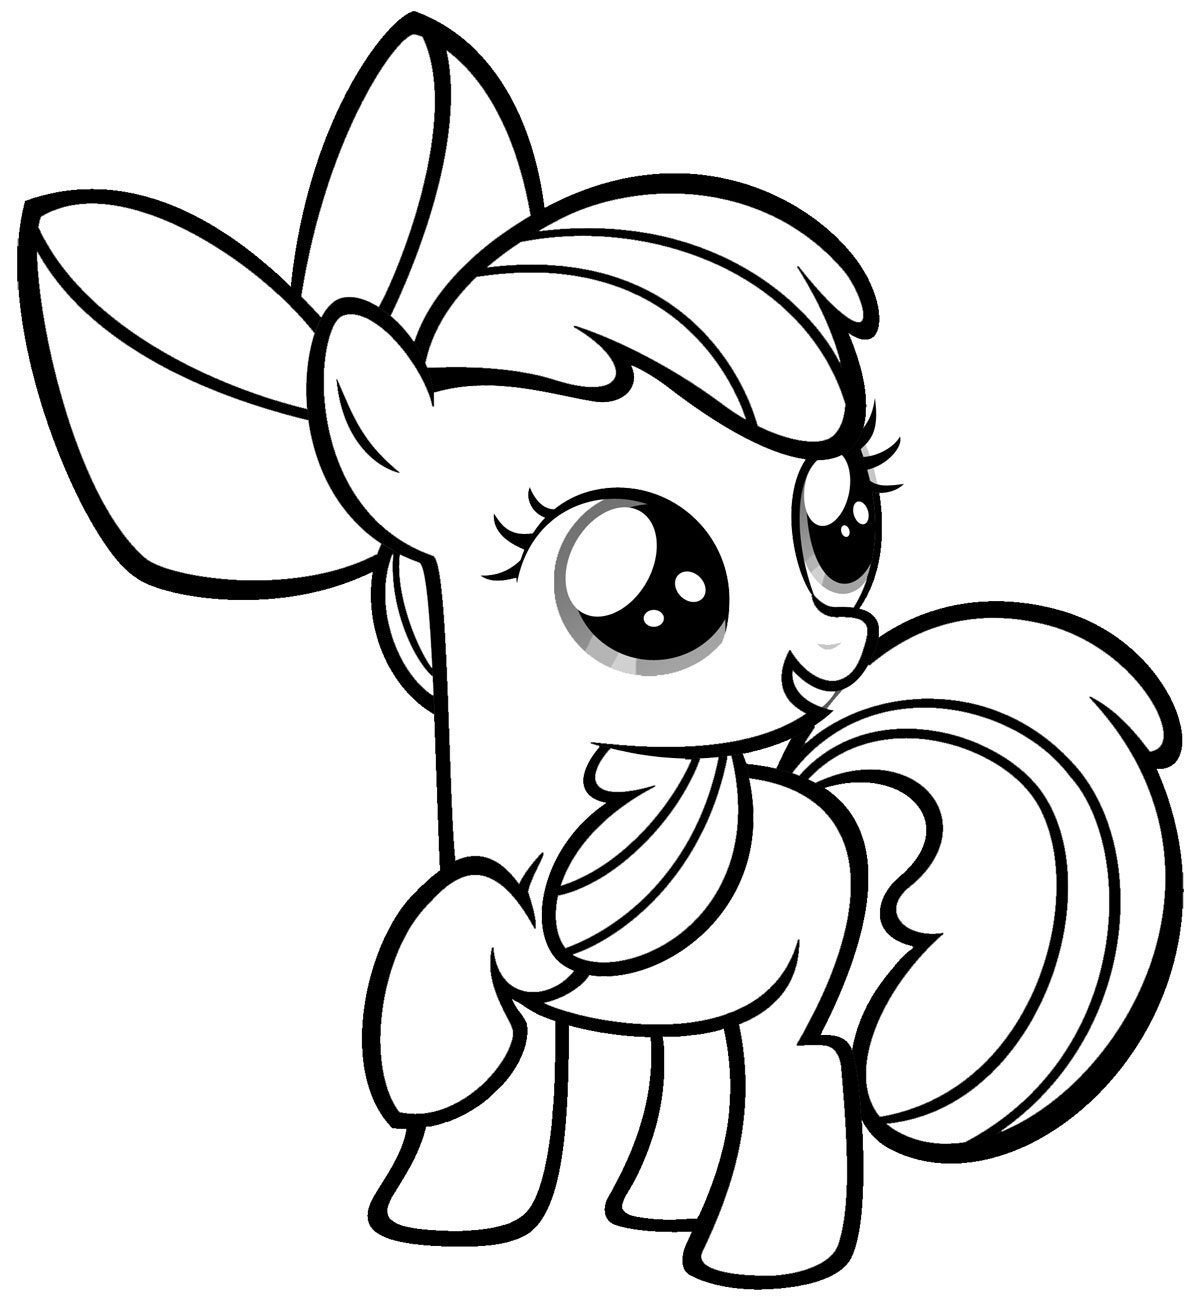 Mlp Coloring Pages Free Printable My Little Pony Coloring Pages For Kids  Coloring Kids